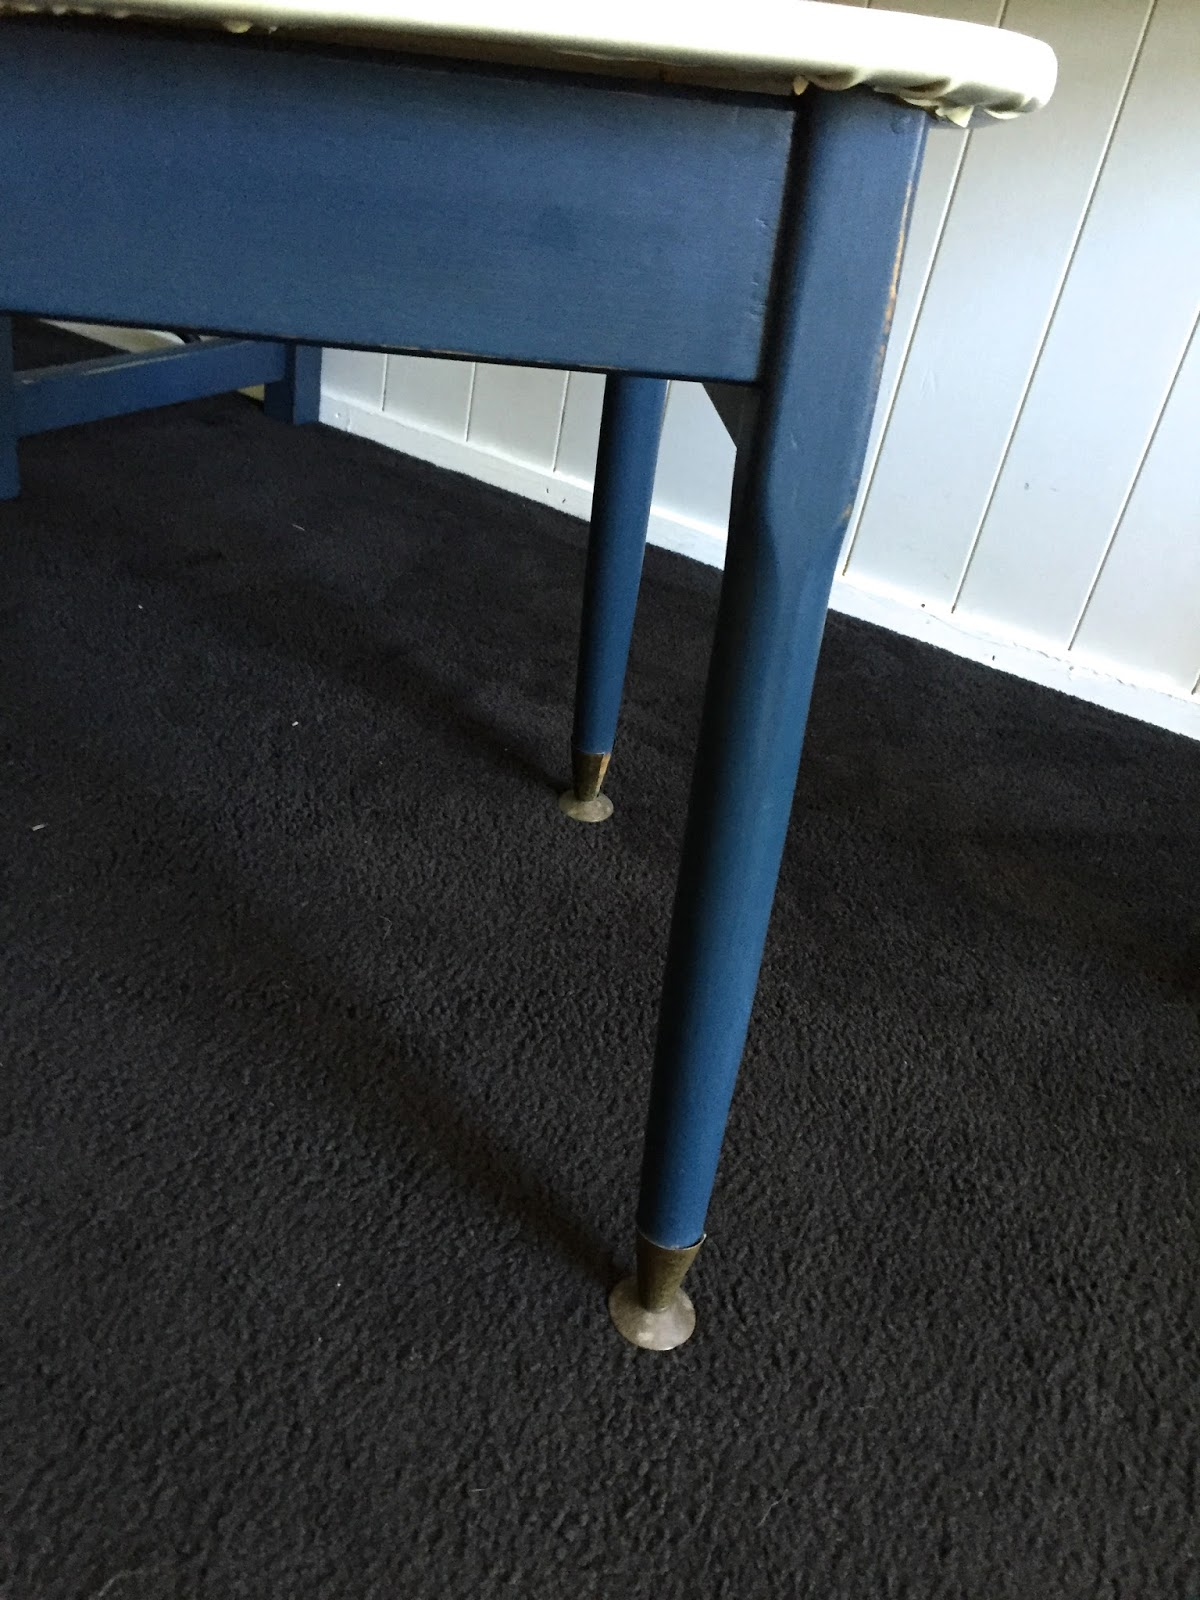 pressed metal furniture. Iconic Australian Vintage Chair - Pressed Metal In Tan With Off White Chippy Painted Legs. I Have Sanded And Sealed The Whole Satin Poly To Furniture